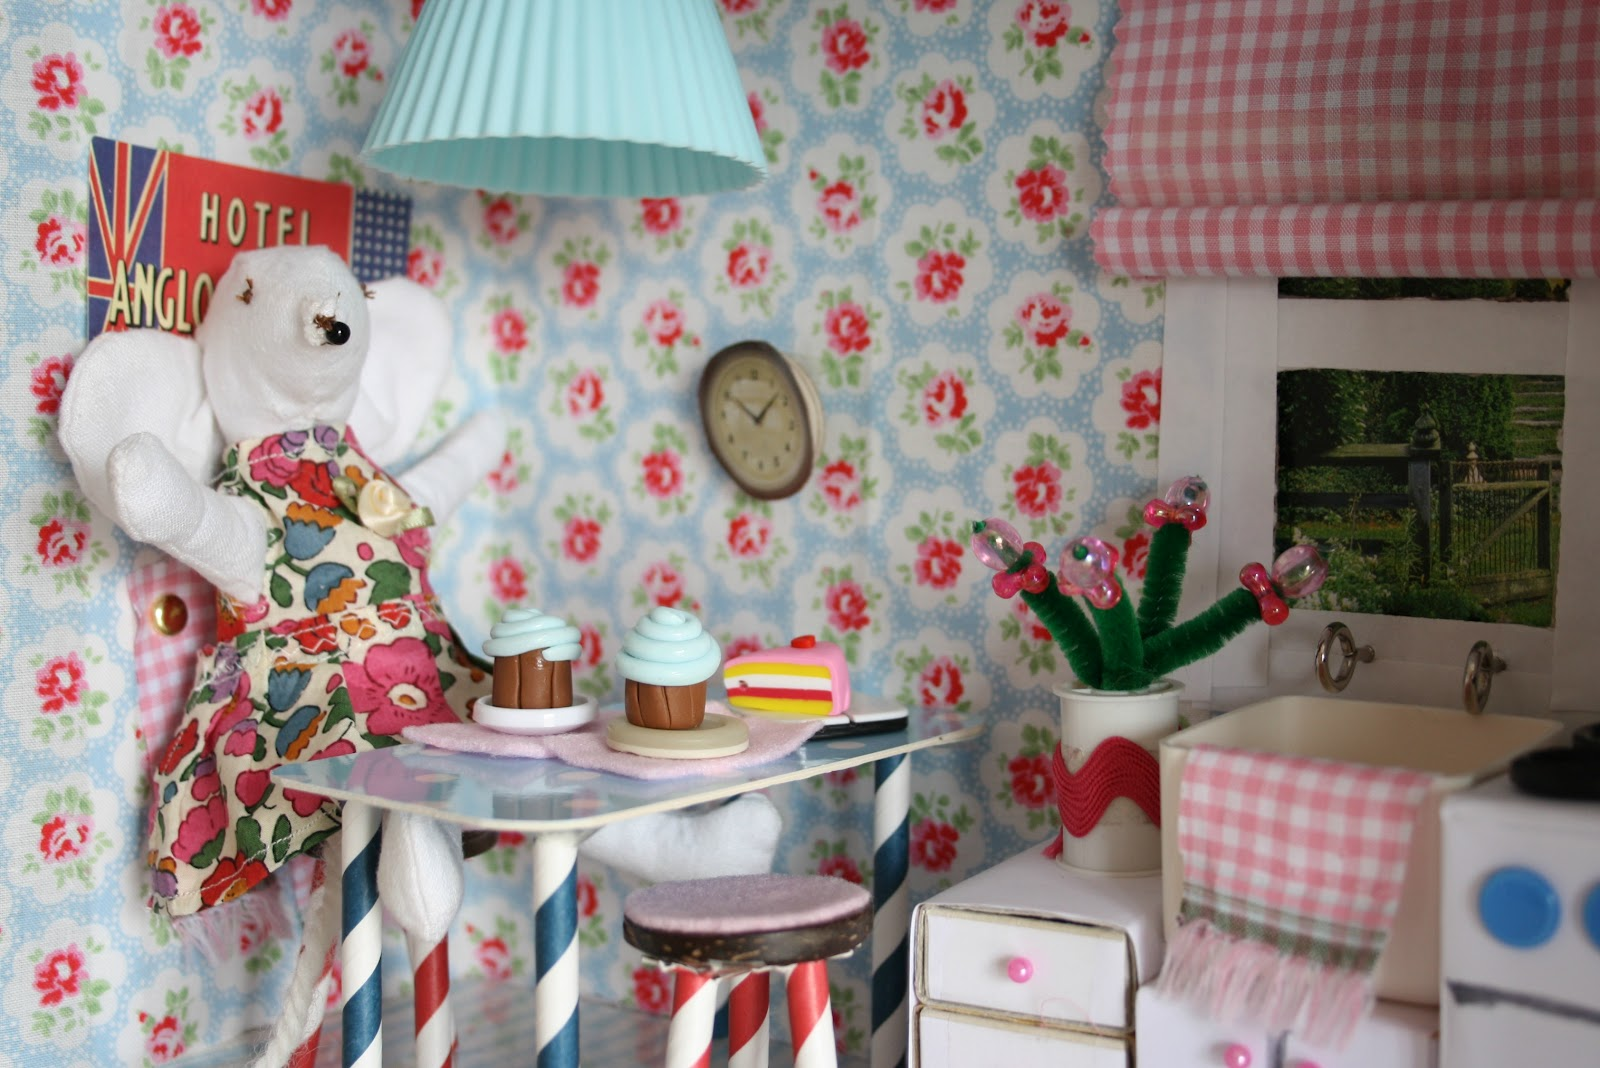 Shoebox Bedroom Tales From A Happy House A Shoebox Kitchen For A Little Mouse